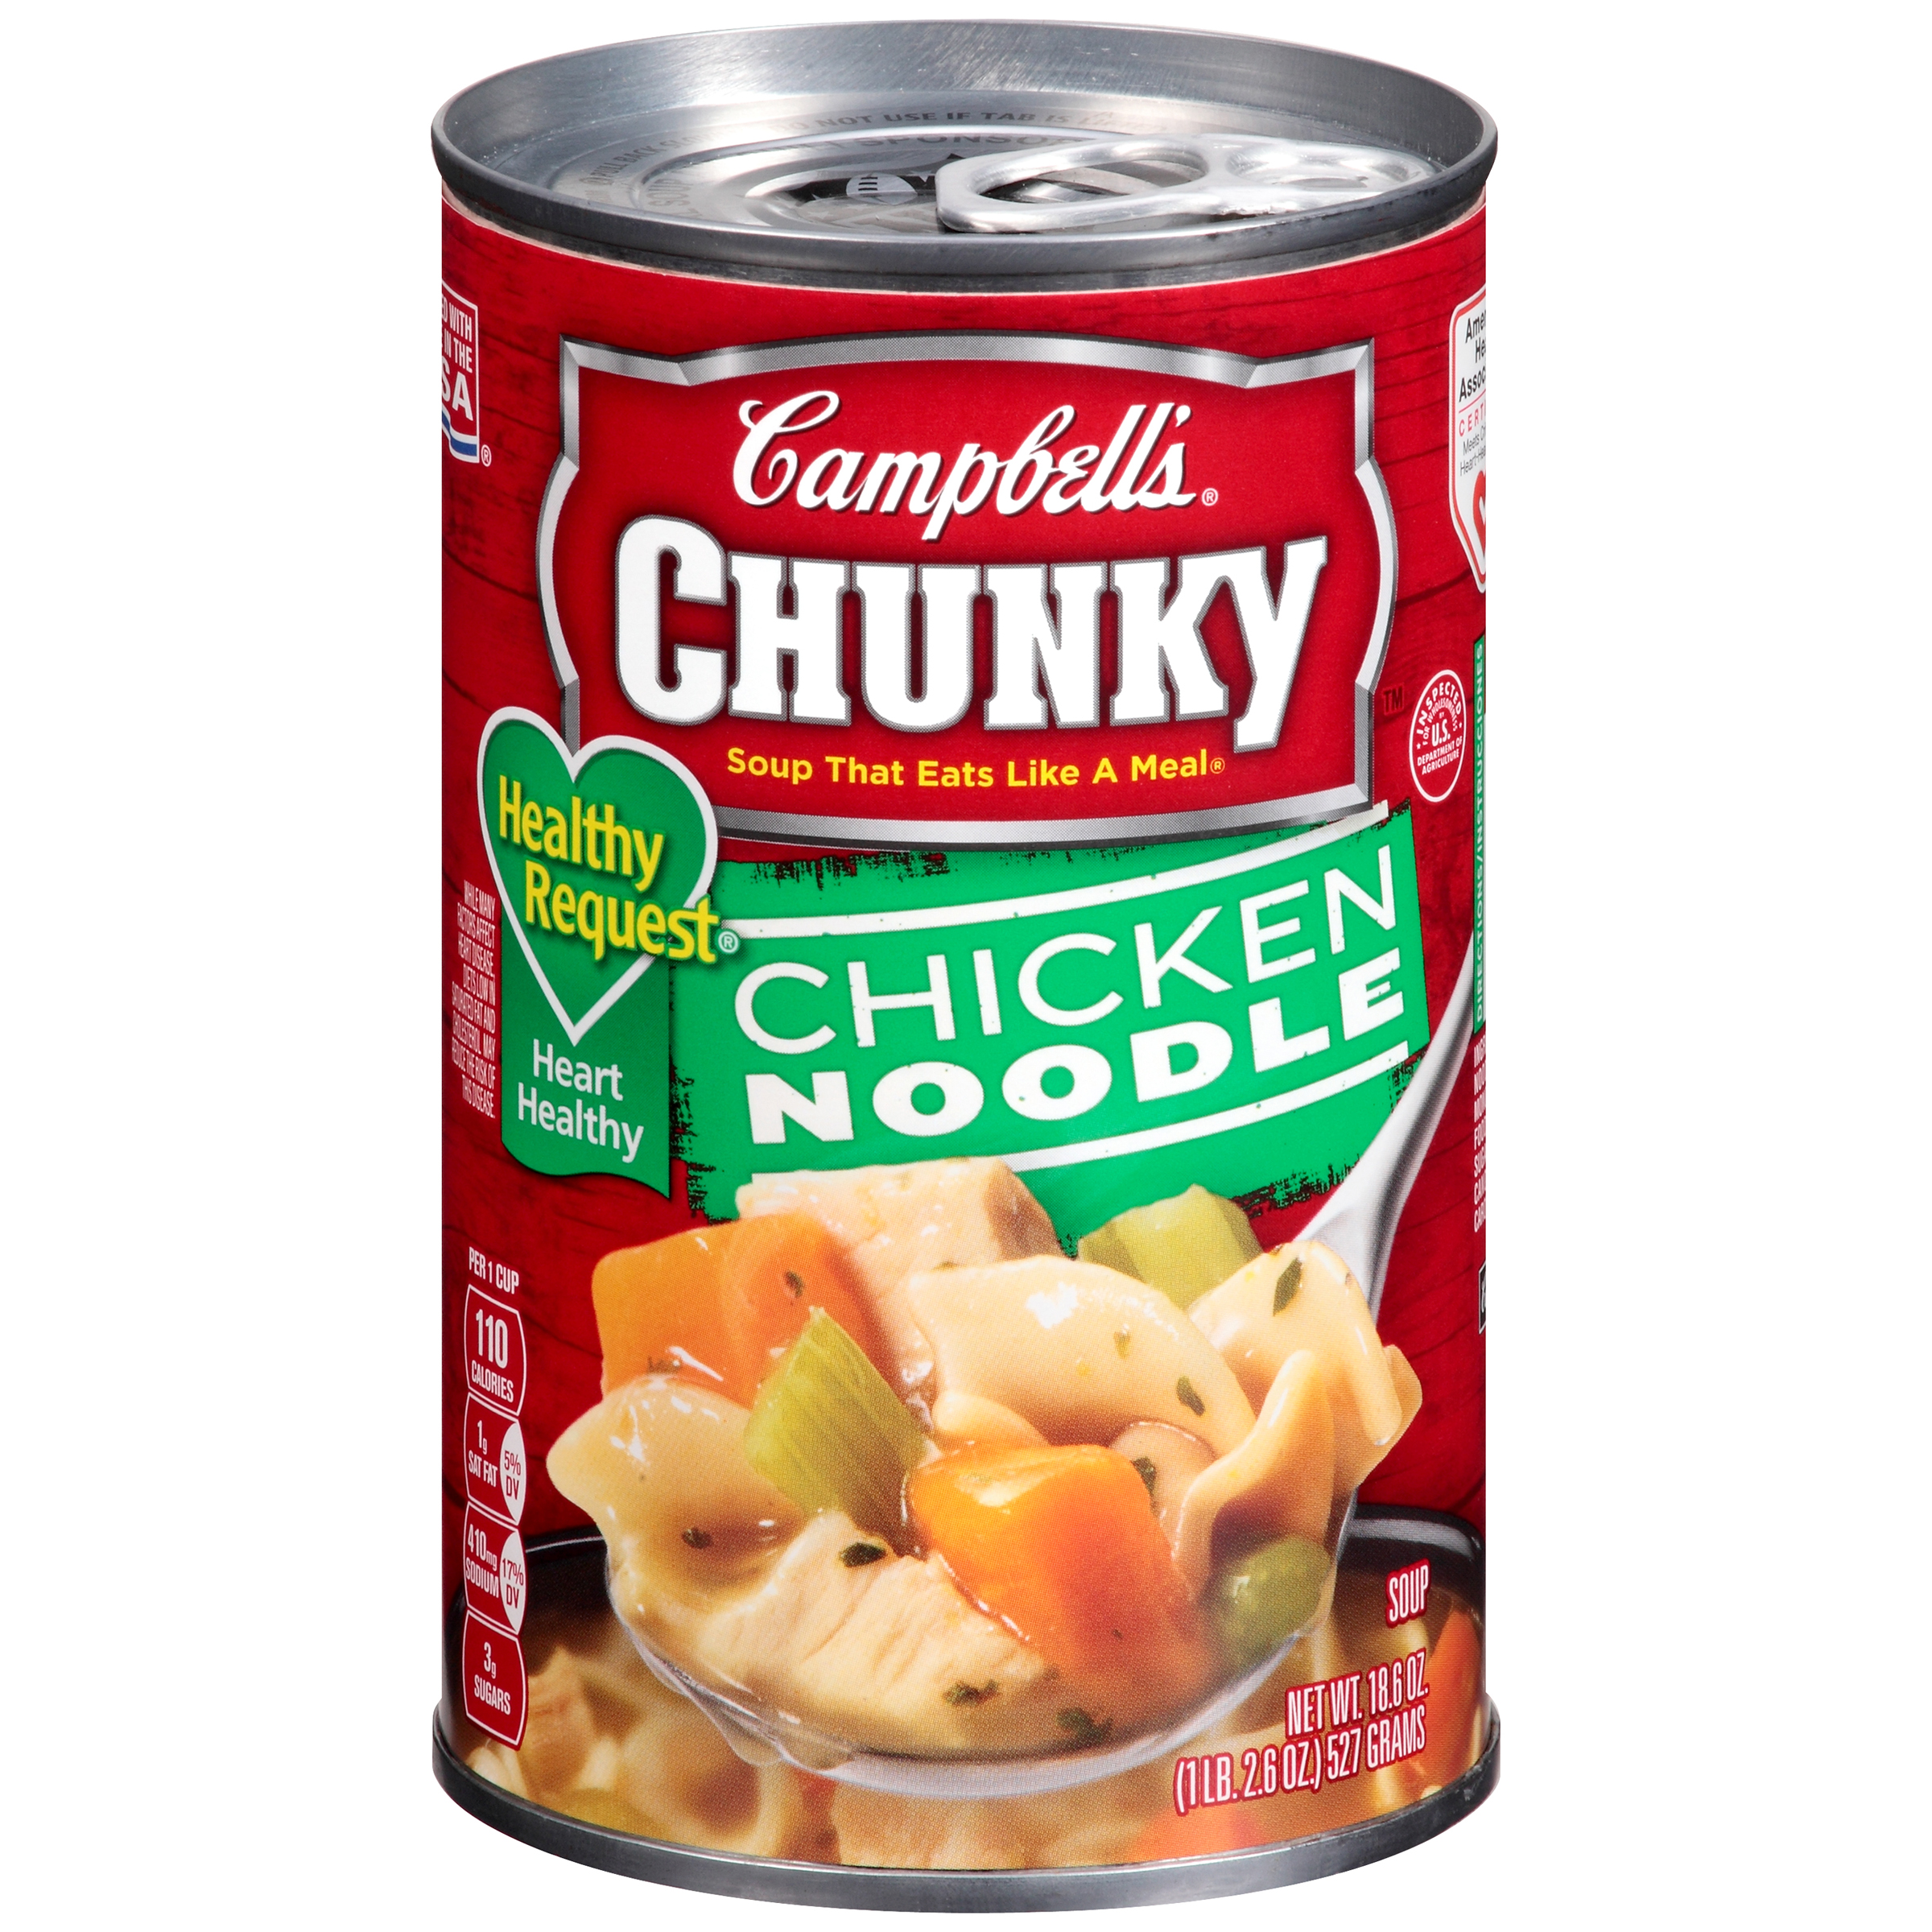 Campbell's Chunky Healthy Request Chicken Noodle Soup 18.6oz